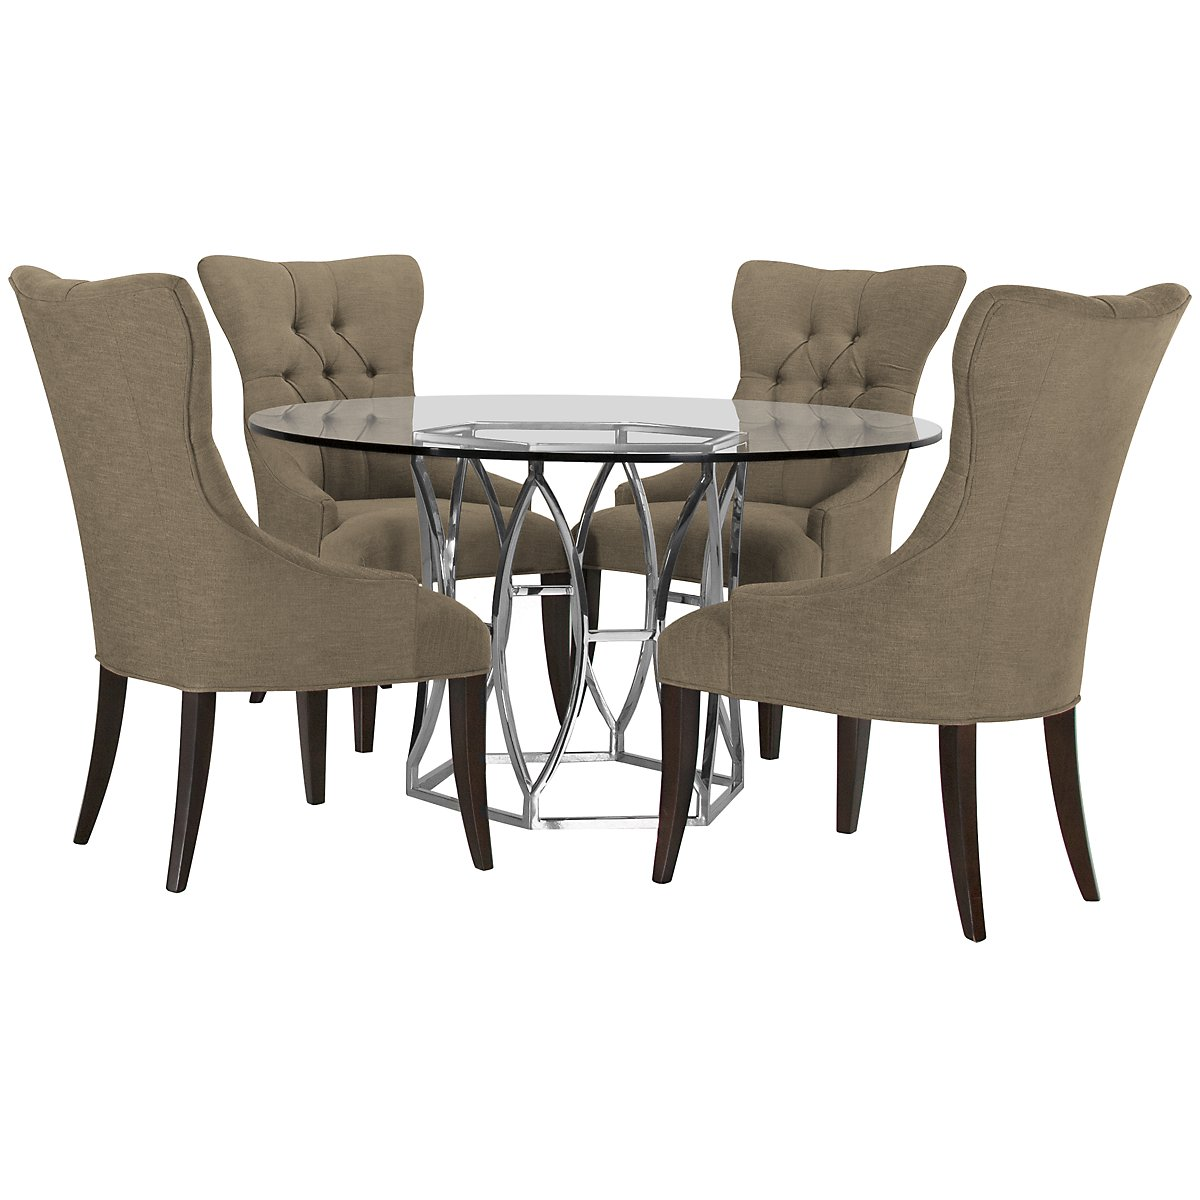 Argent Khaki Glass Table & 4 Upholstered Chairs